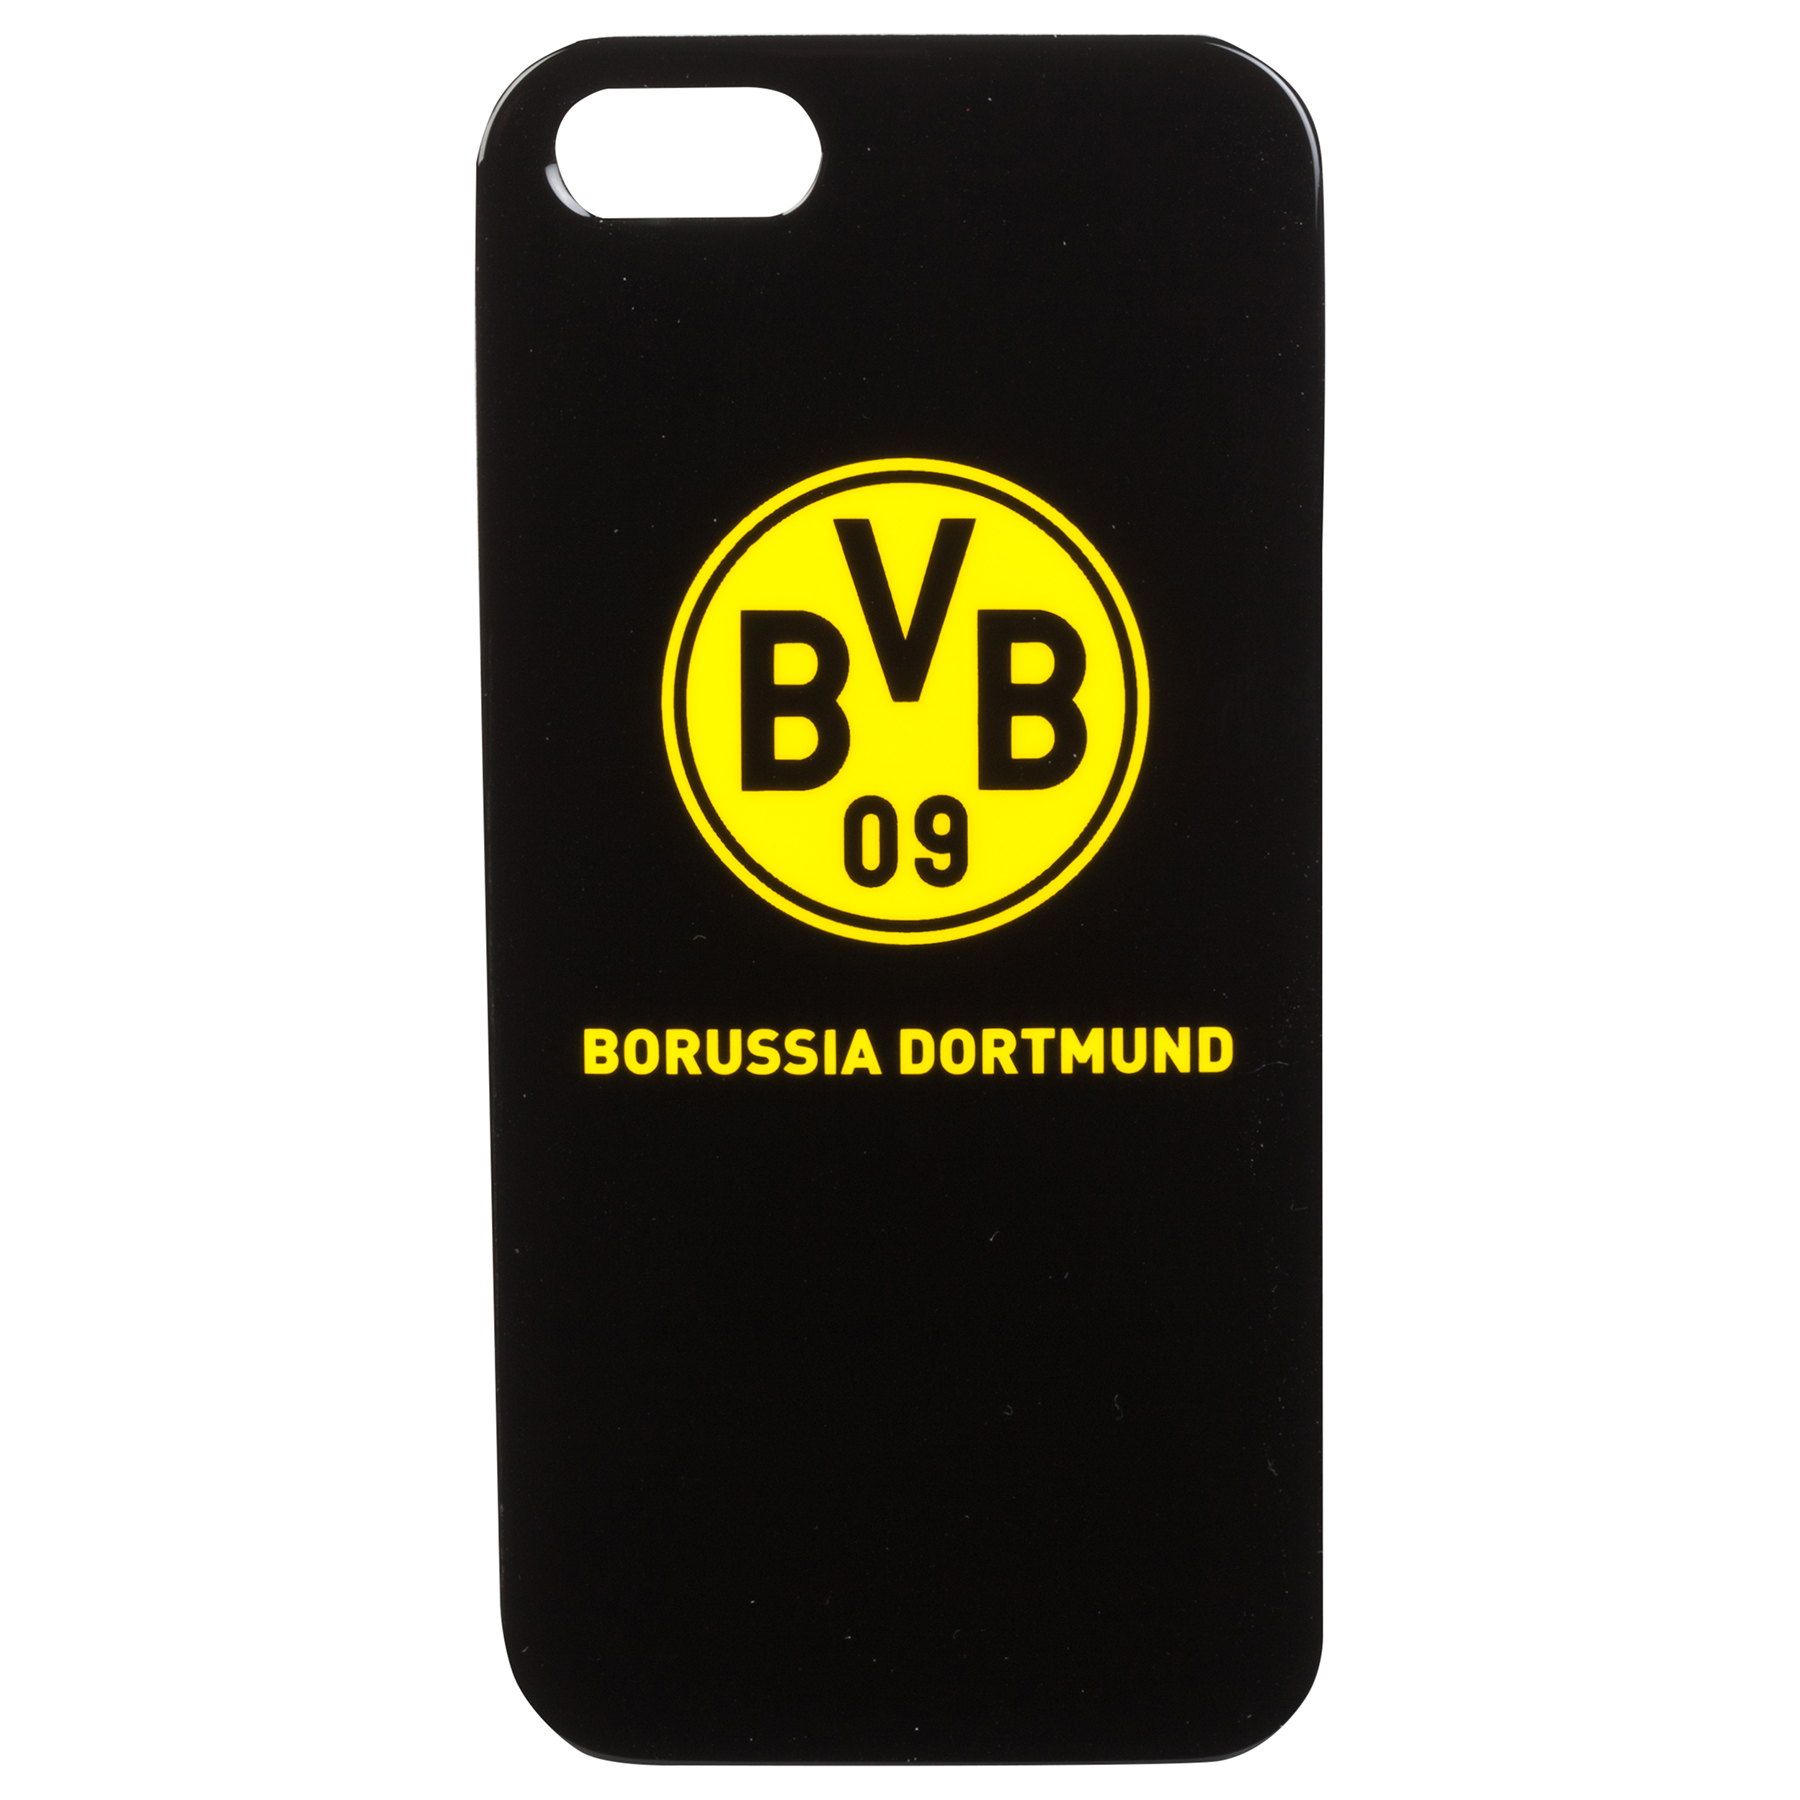 BVB iPhone 5 Back Clip Cover - Black/Yellow